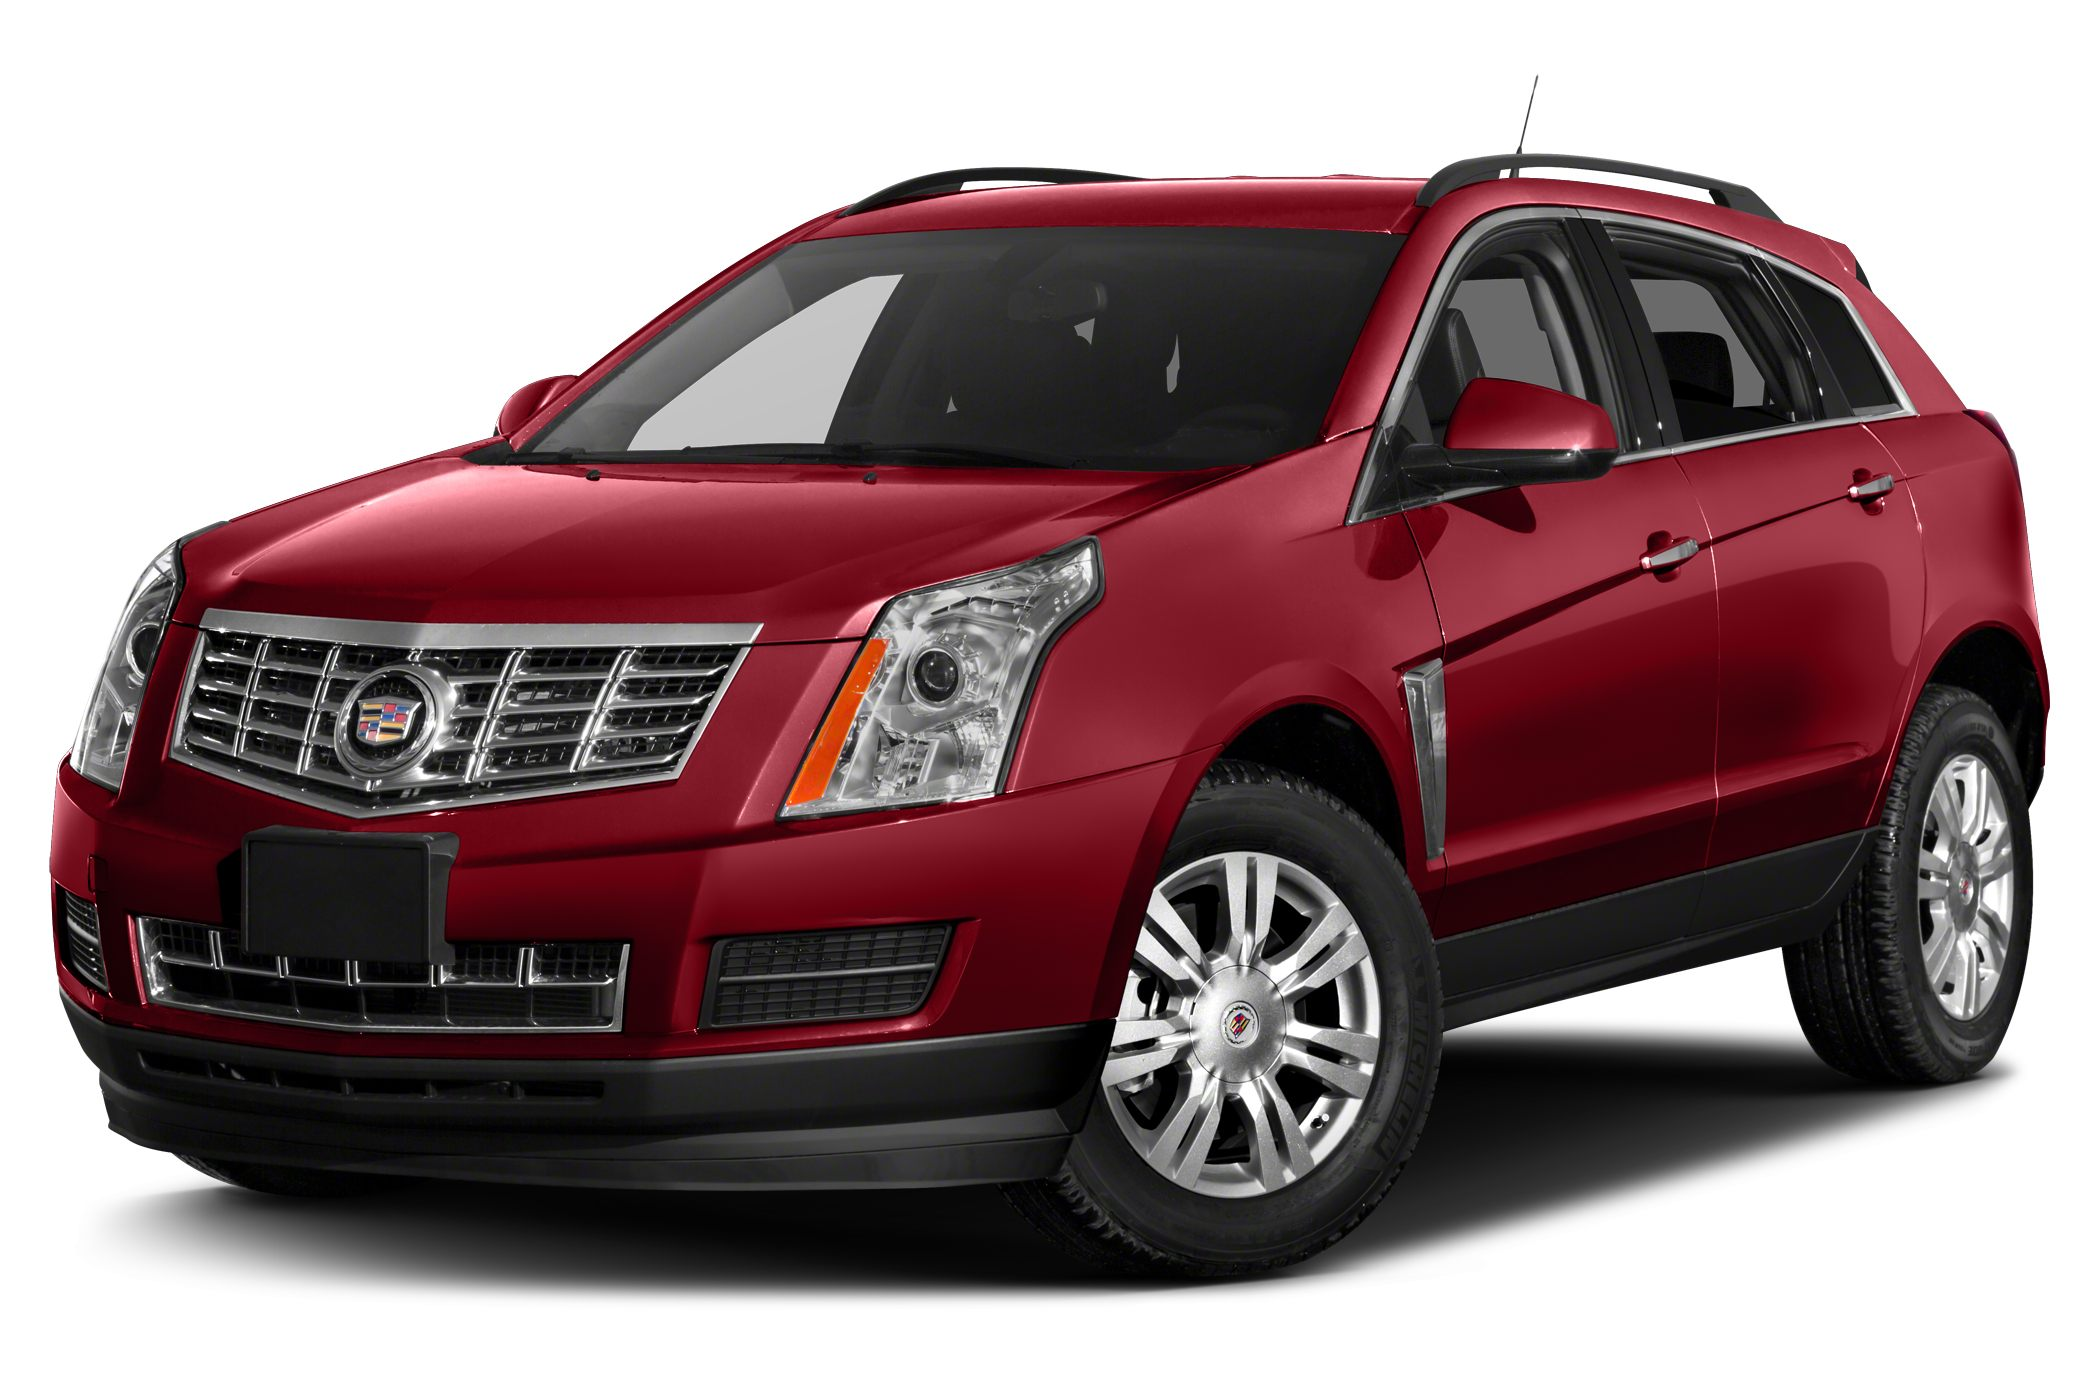 2016 Cadillac SRX Luxury Collection Come see this 2016 Cadillac SRX Luxury Collection Its Automat